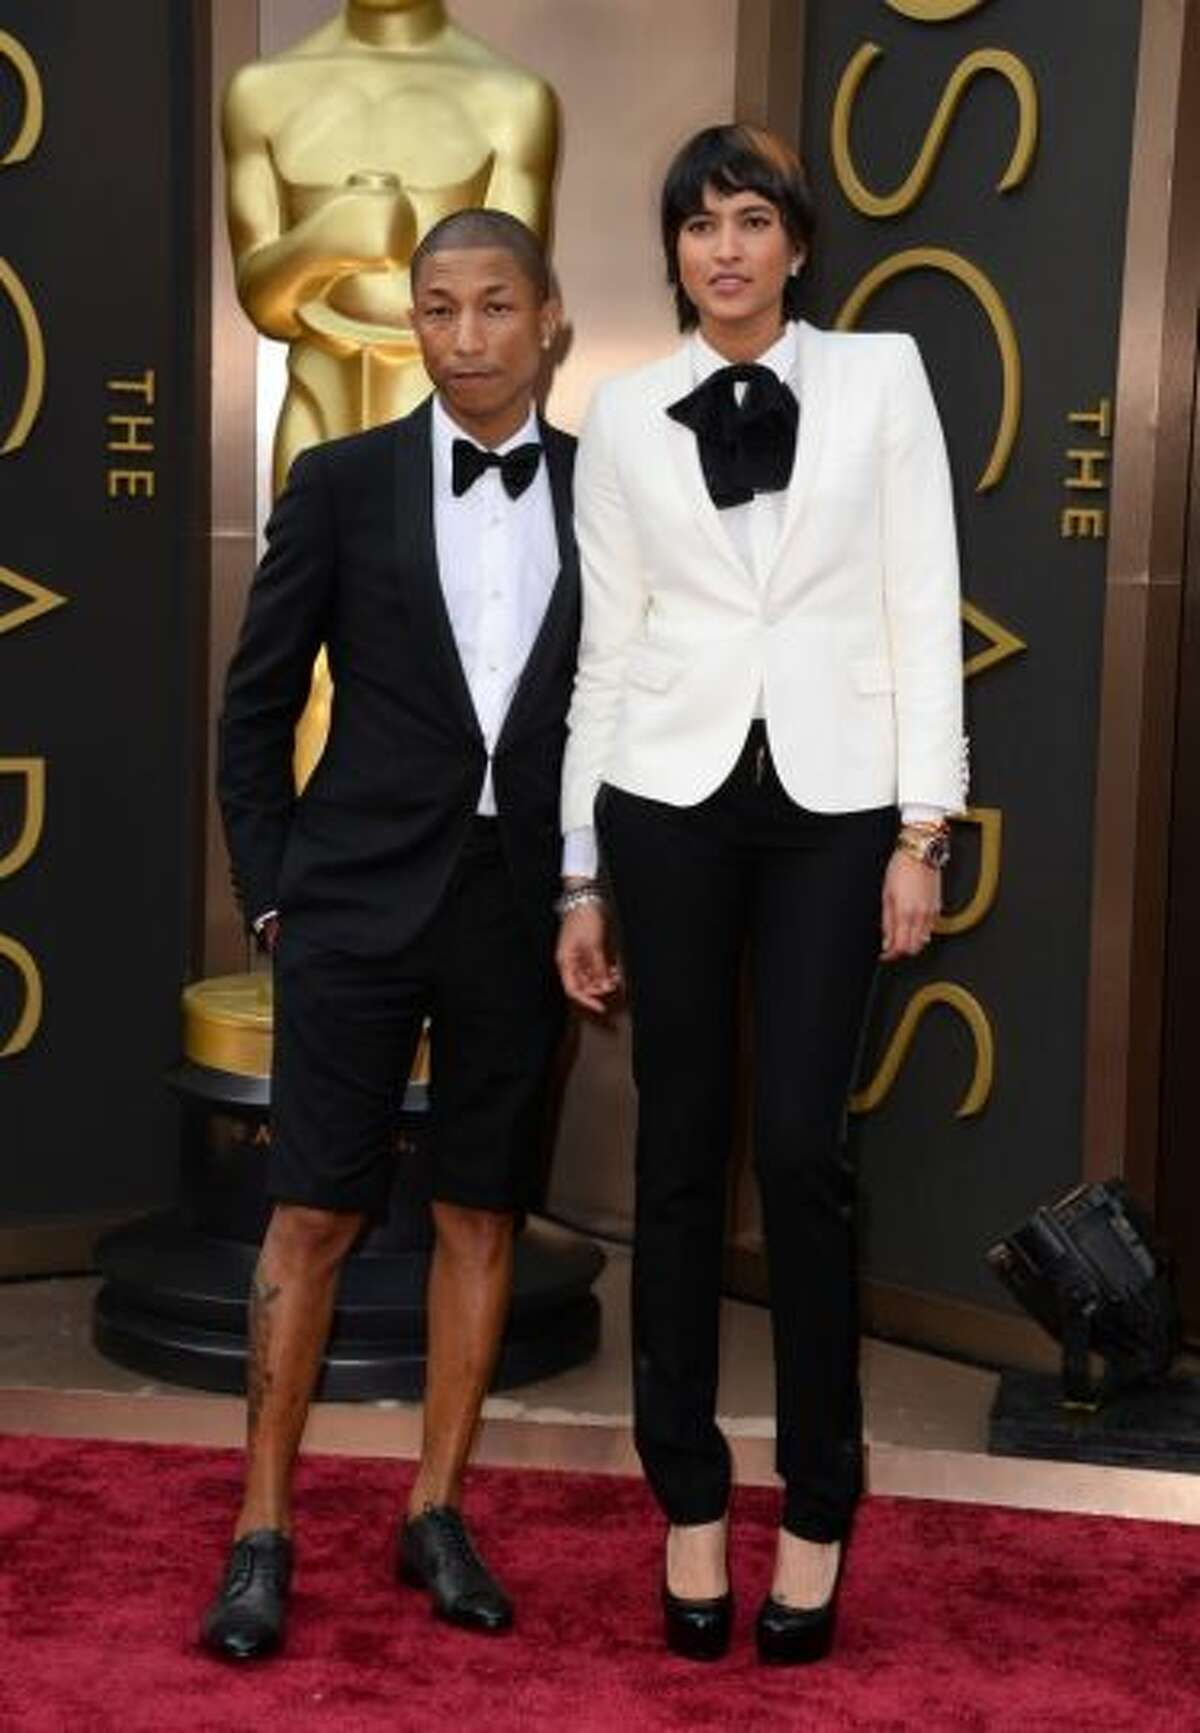 Apparently Pharrell's choice of pants made an impact in the fashion world. J. Crew and other online sites have started promoting the short suit look. Why? Who knows.